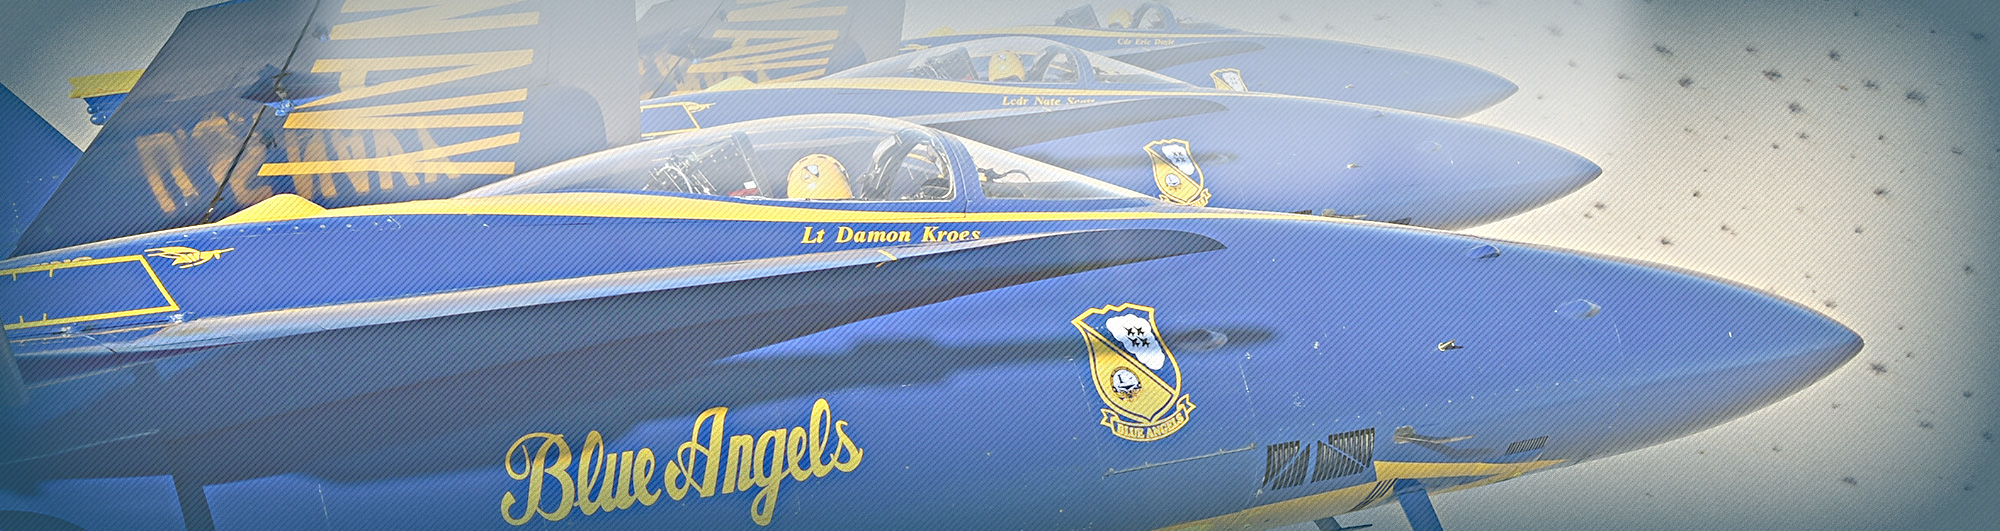 blue-angels-01.jpg